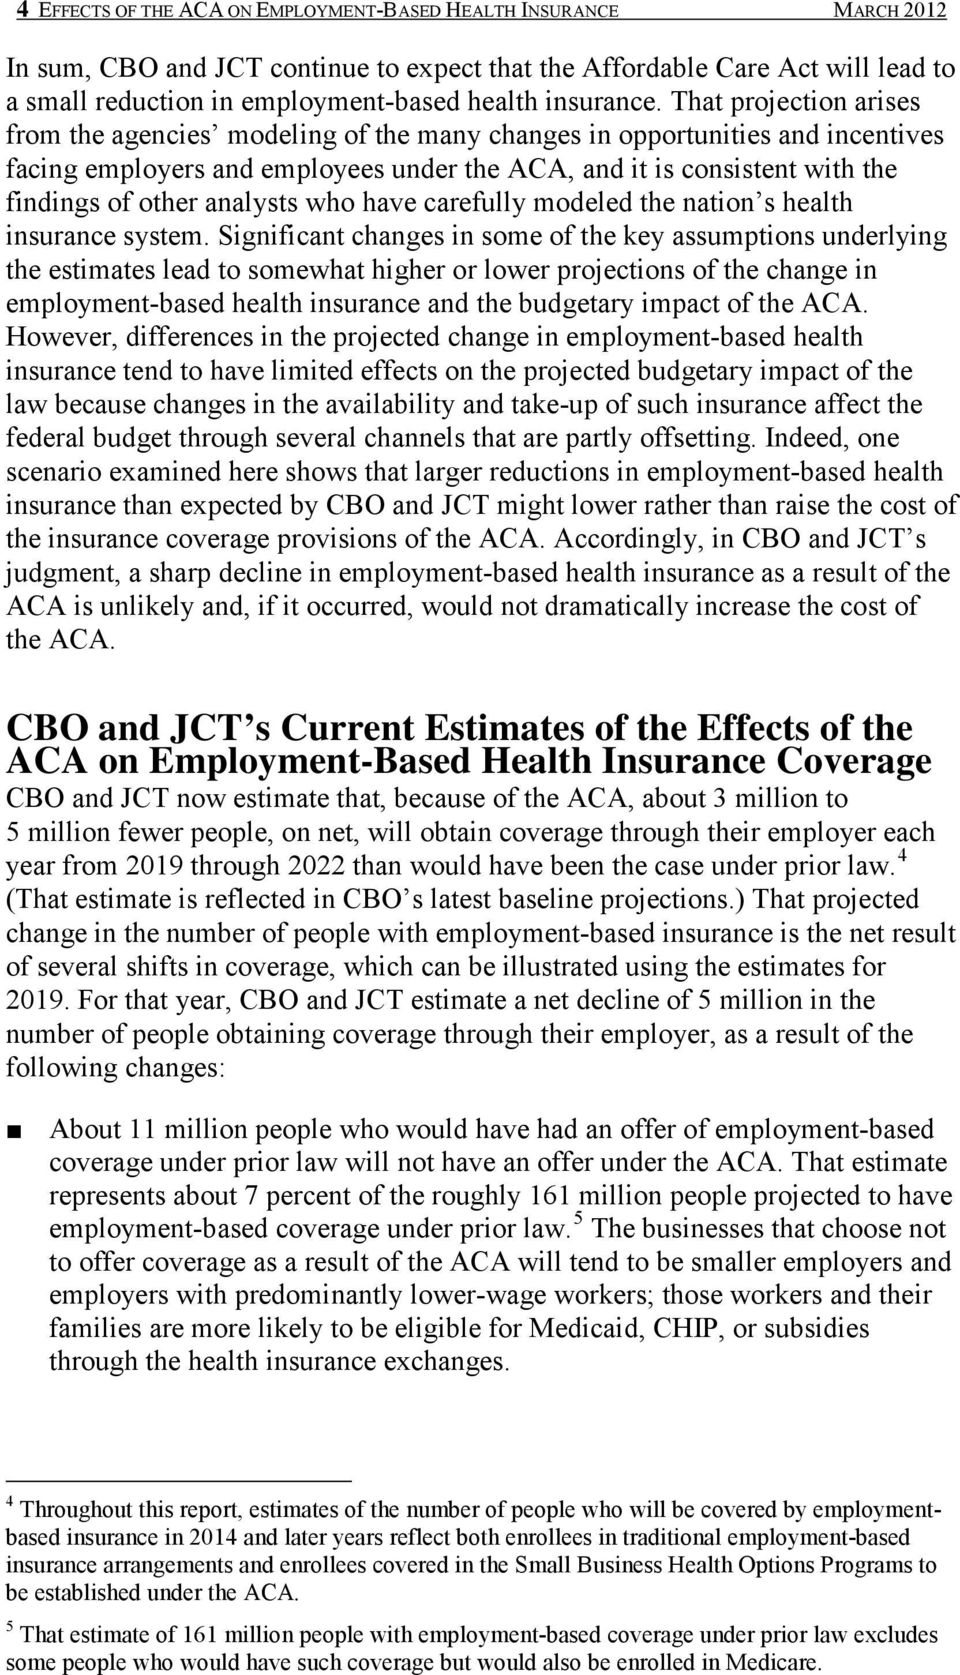 That projection arises from the agencies modeling of the many changes in opportunities and incentives facing employers and employees under the ACA, and it is consistent with the findings of other